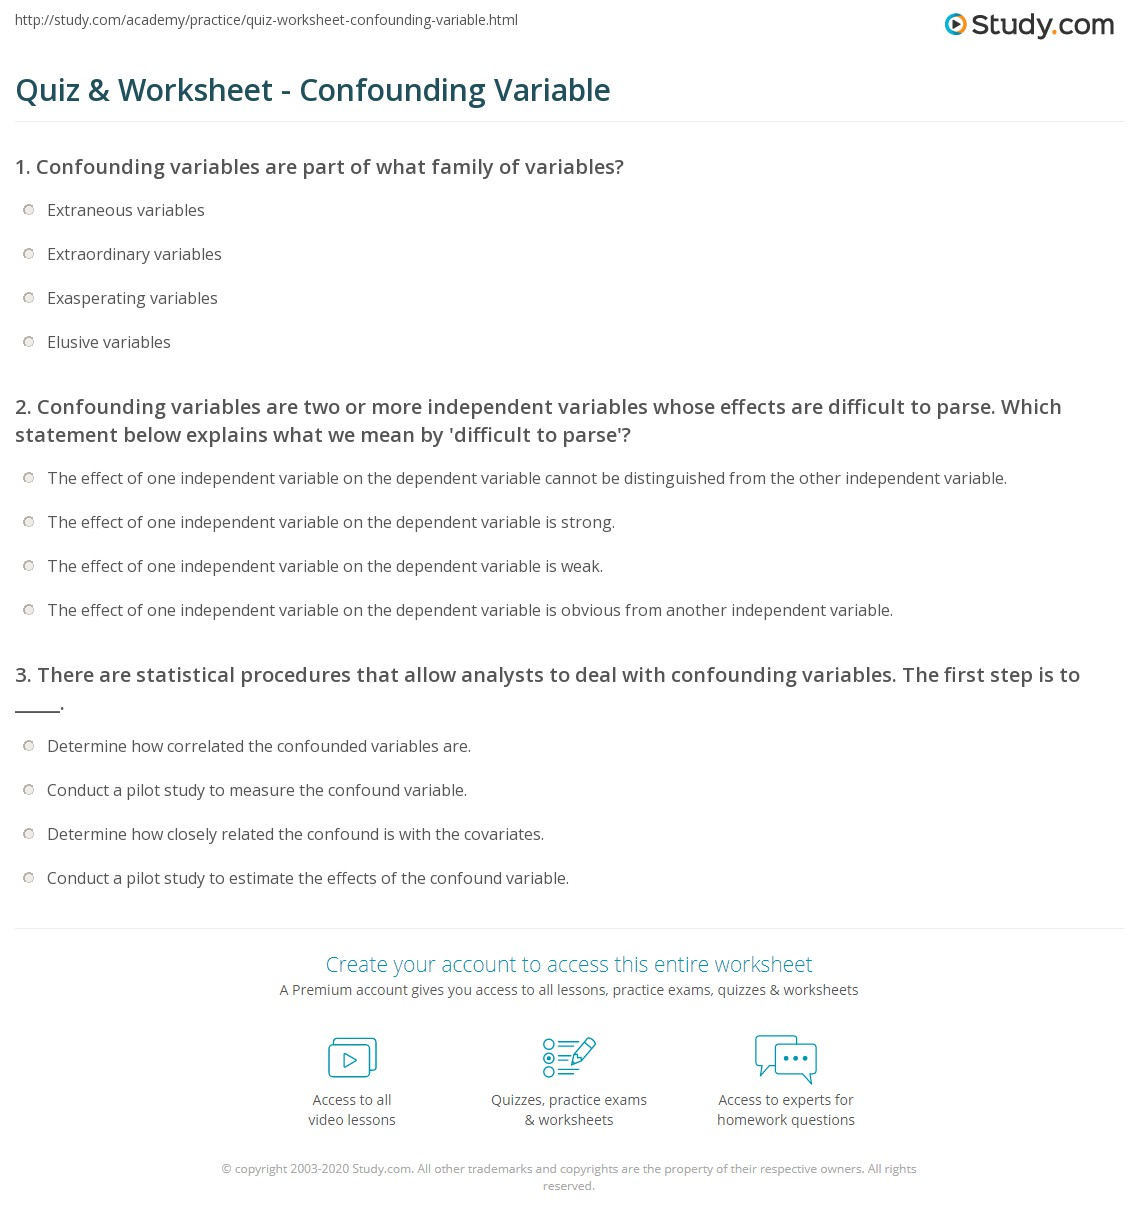 Printables Independent And Dependent Variables Worksheet Science quiz worksheet confounding variable study com print definition example worksheet